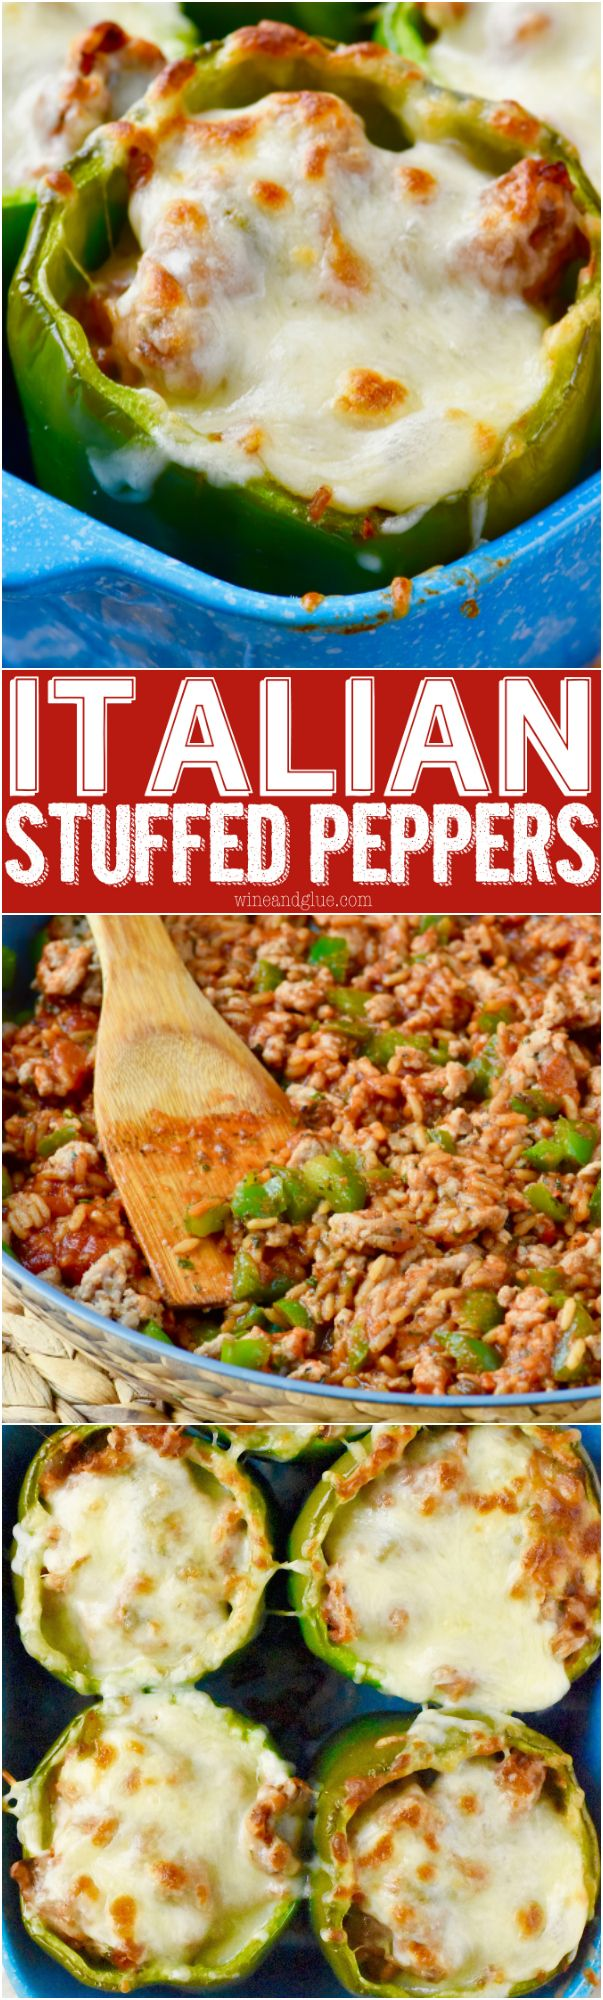 These Italian Stuffed Peppers are a perfect easy weeknight meal! A full, well rounded meal, all in one dish!